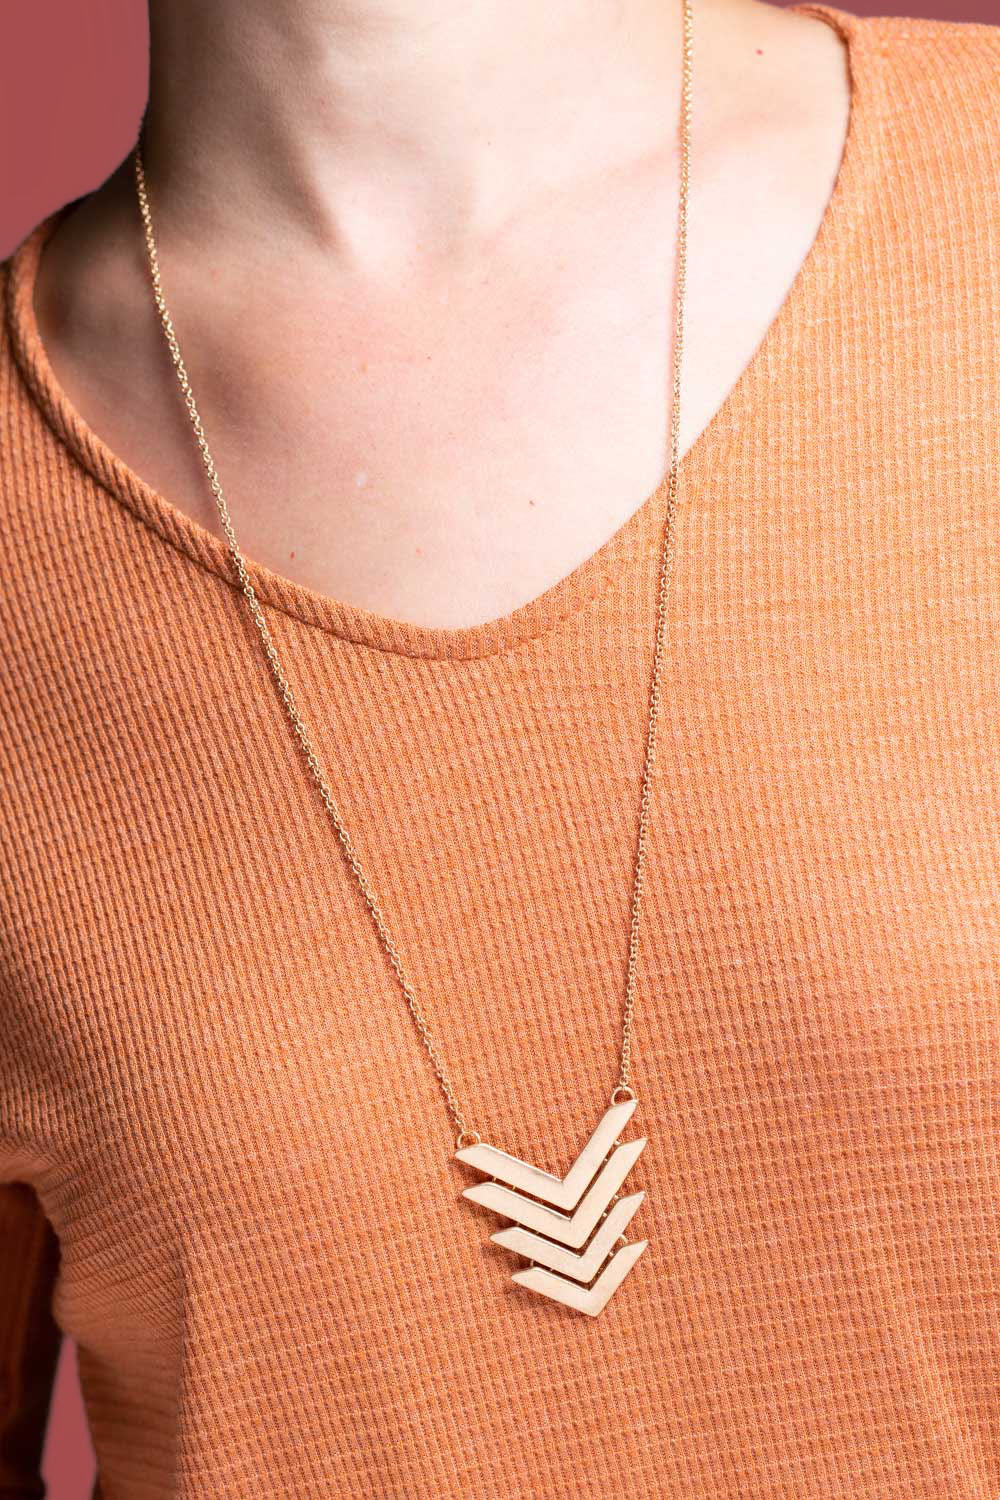 Type 3 Daring Directions Necklace